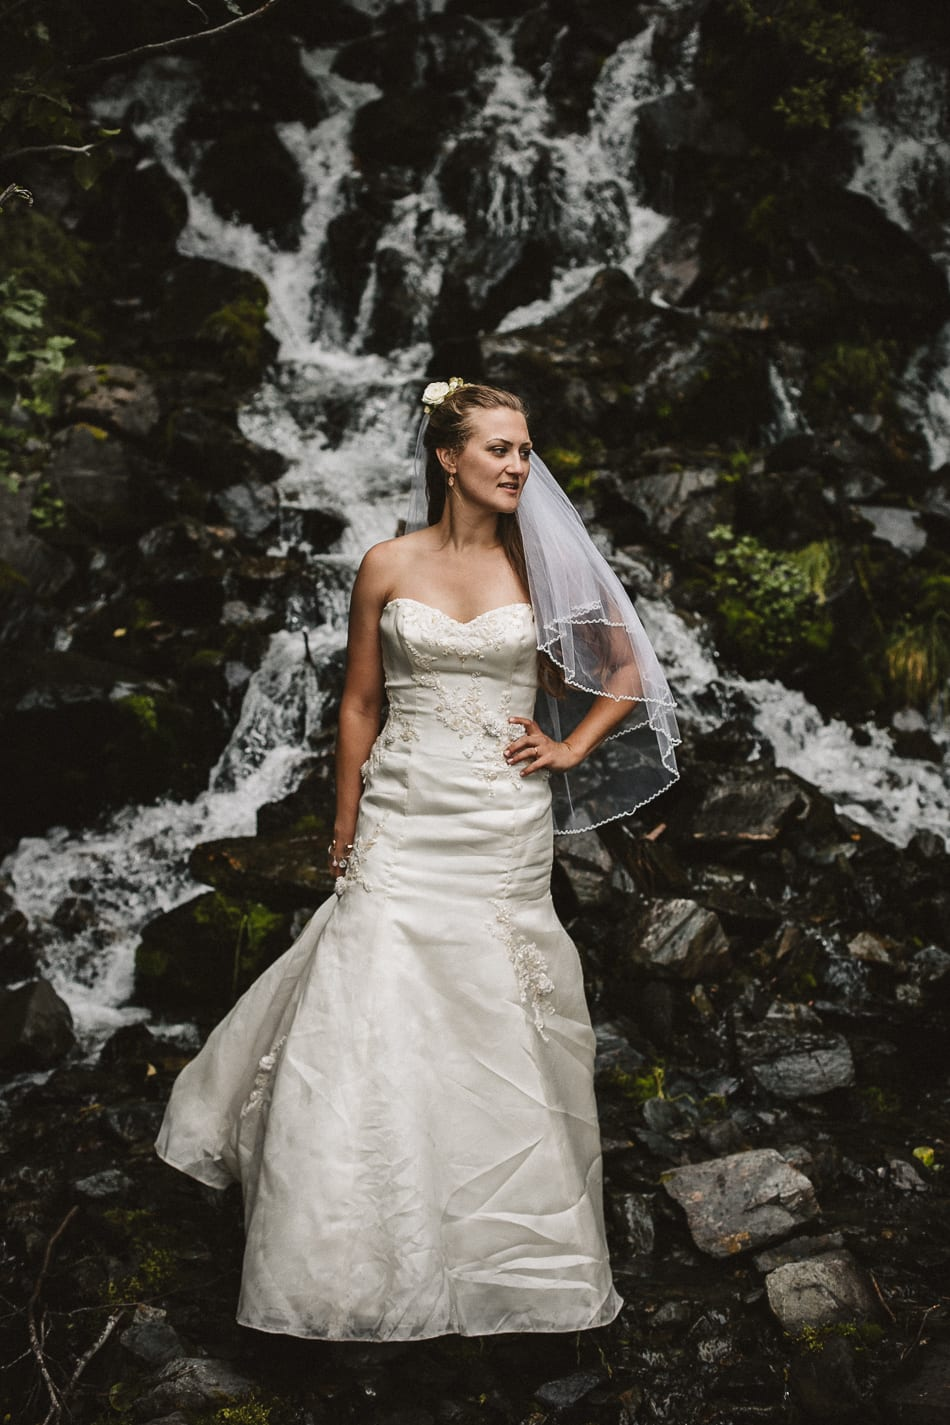 seward-alaska-beach-wedding-photographer-83